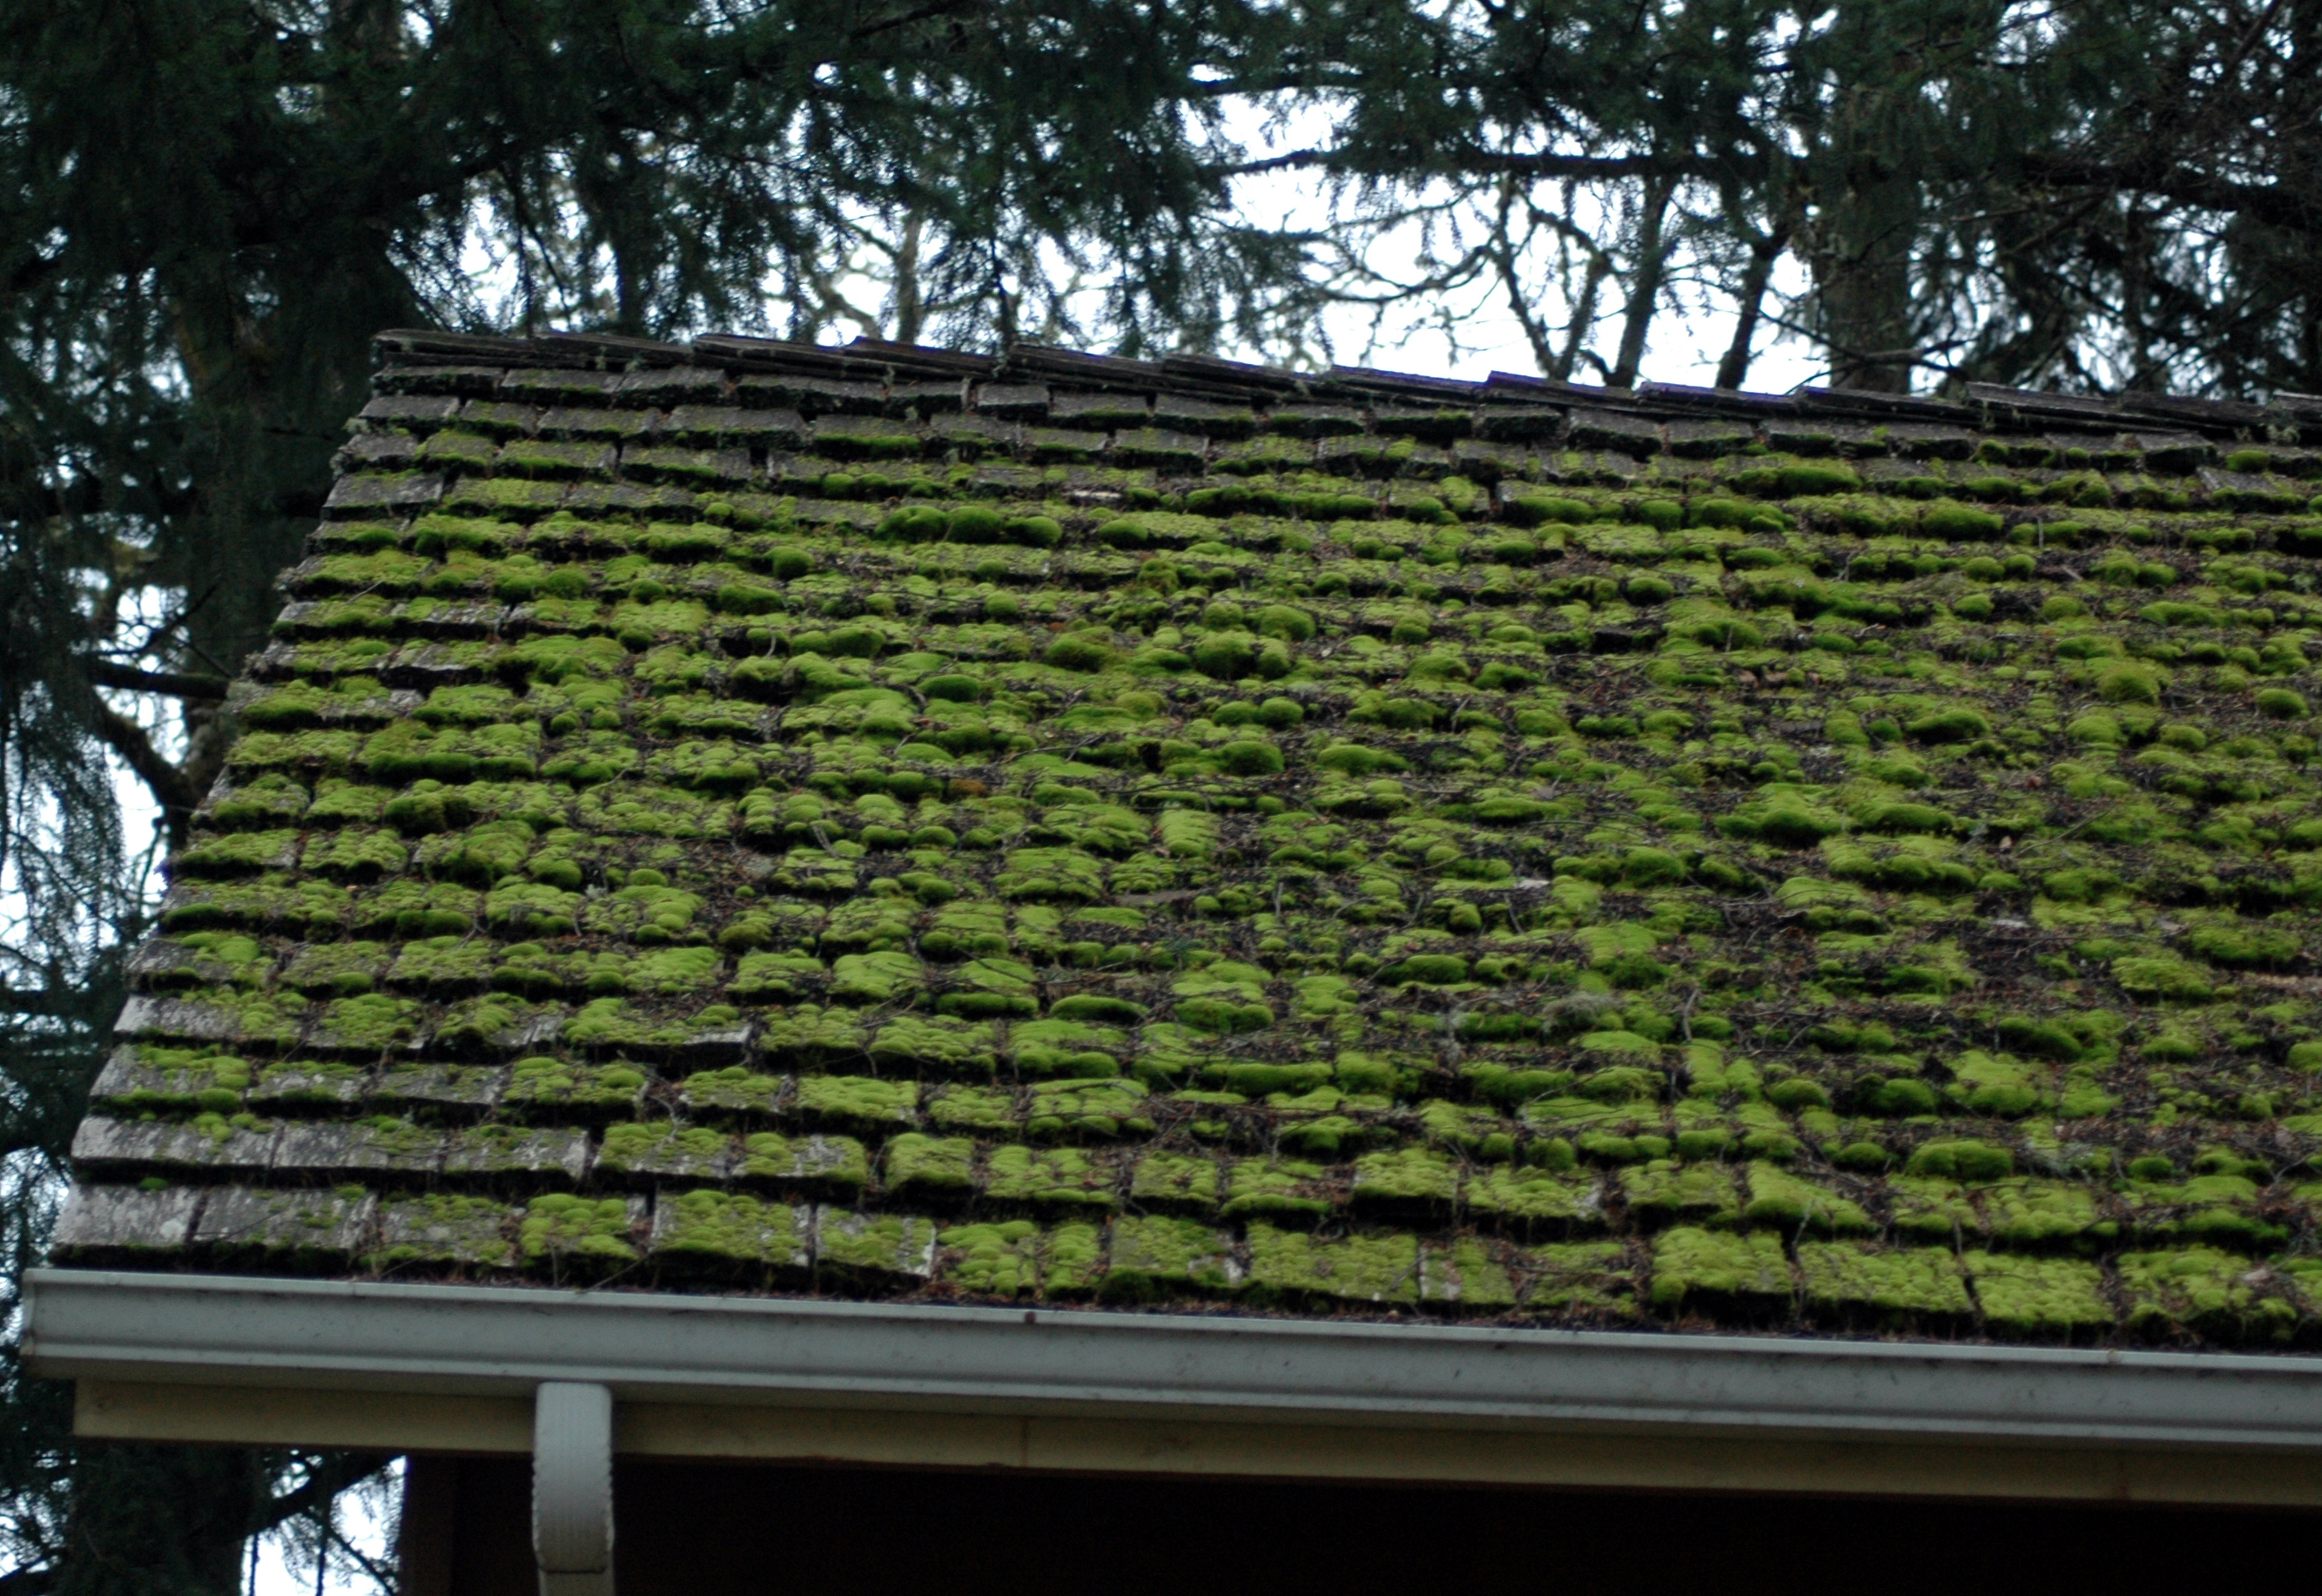 Trees shade mossy roof